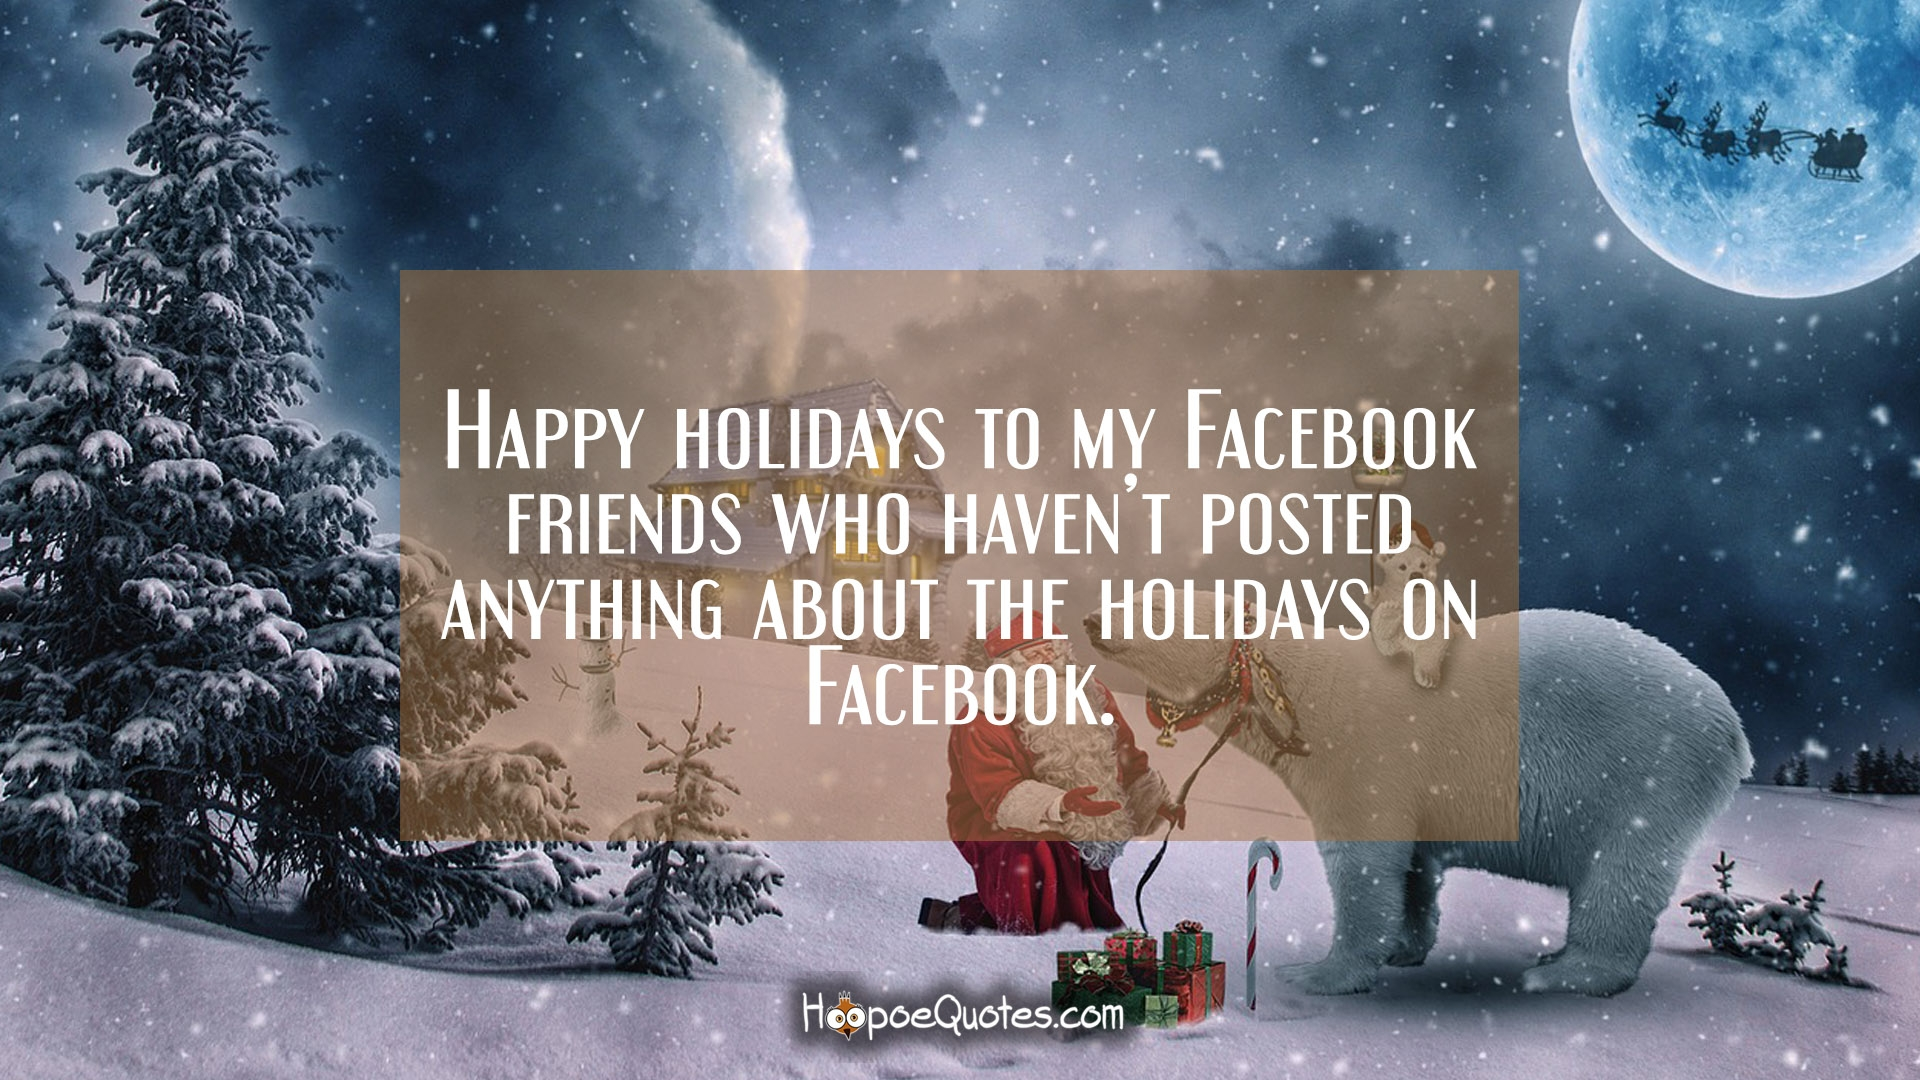 Happy Holidays To My Facebook Friends Who Havent Posted